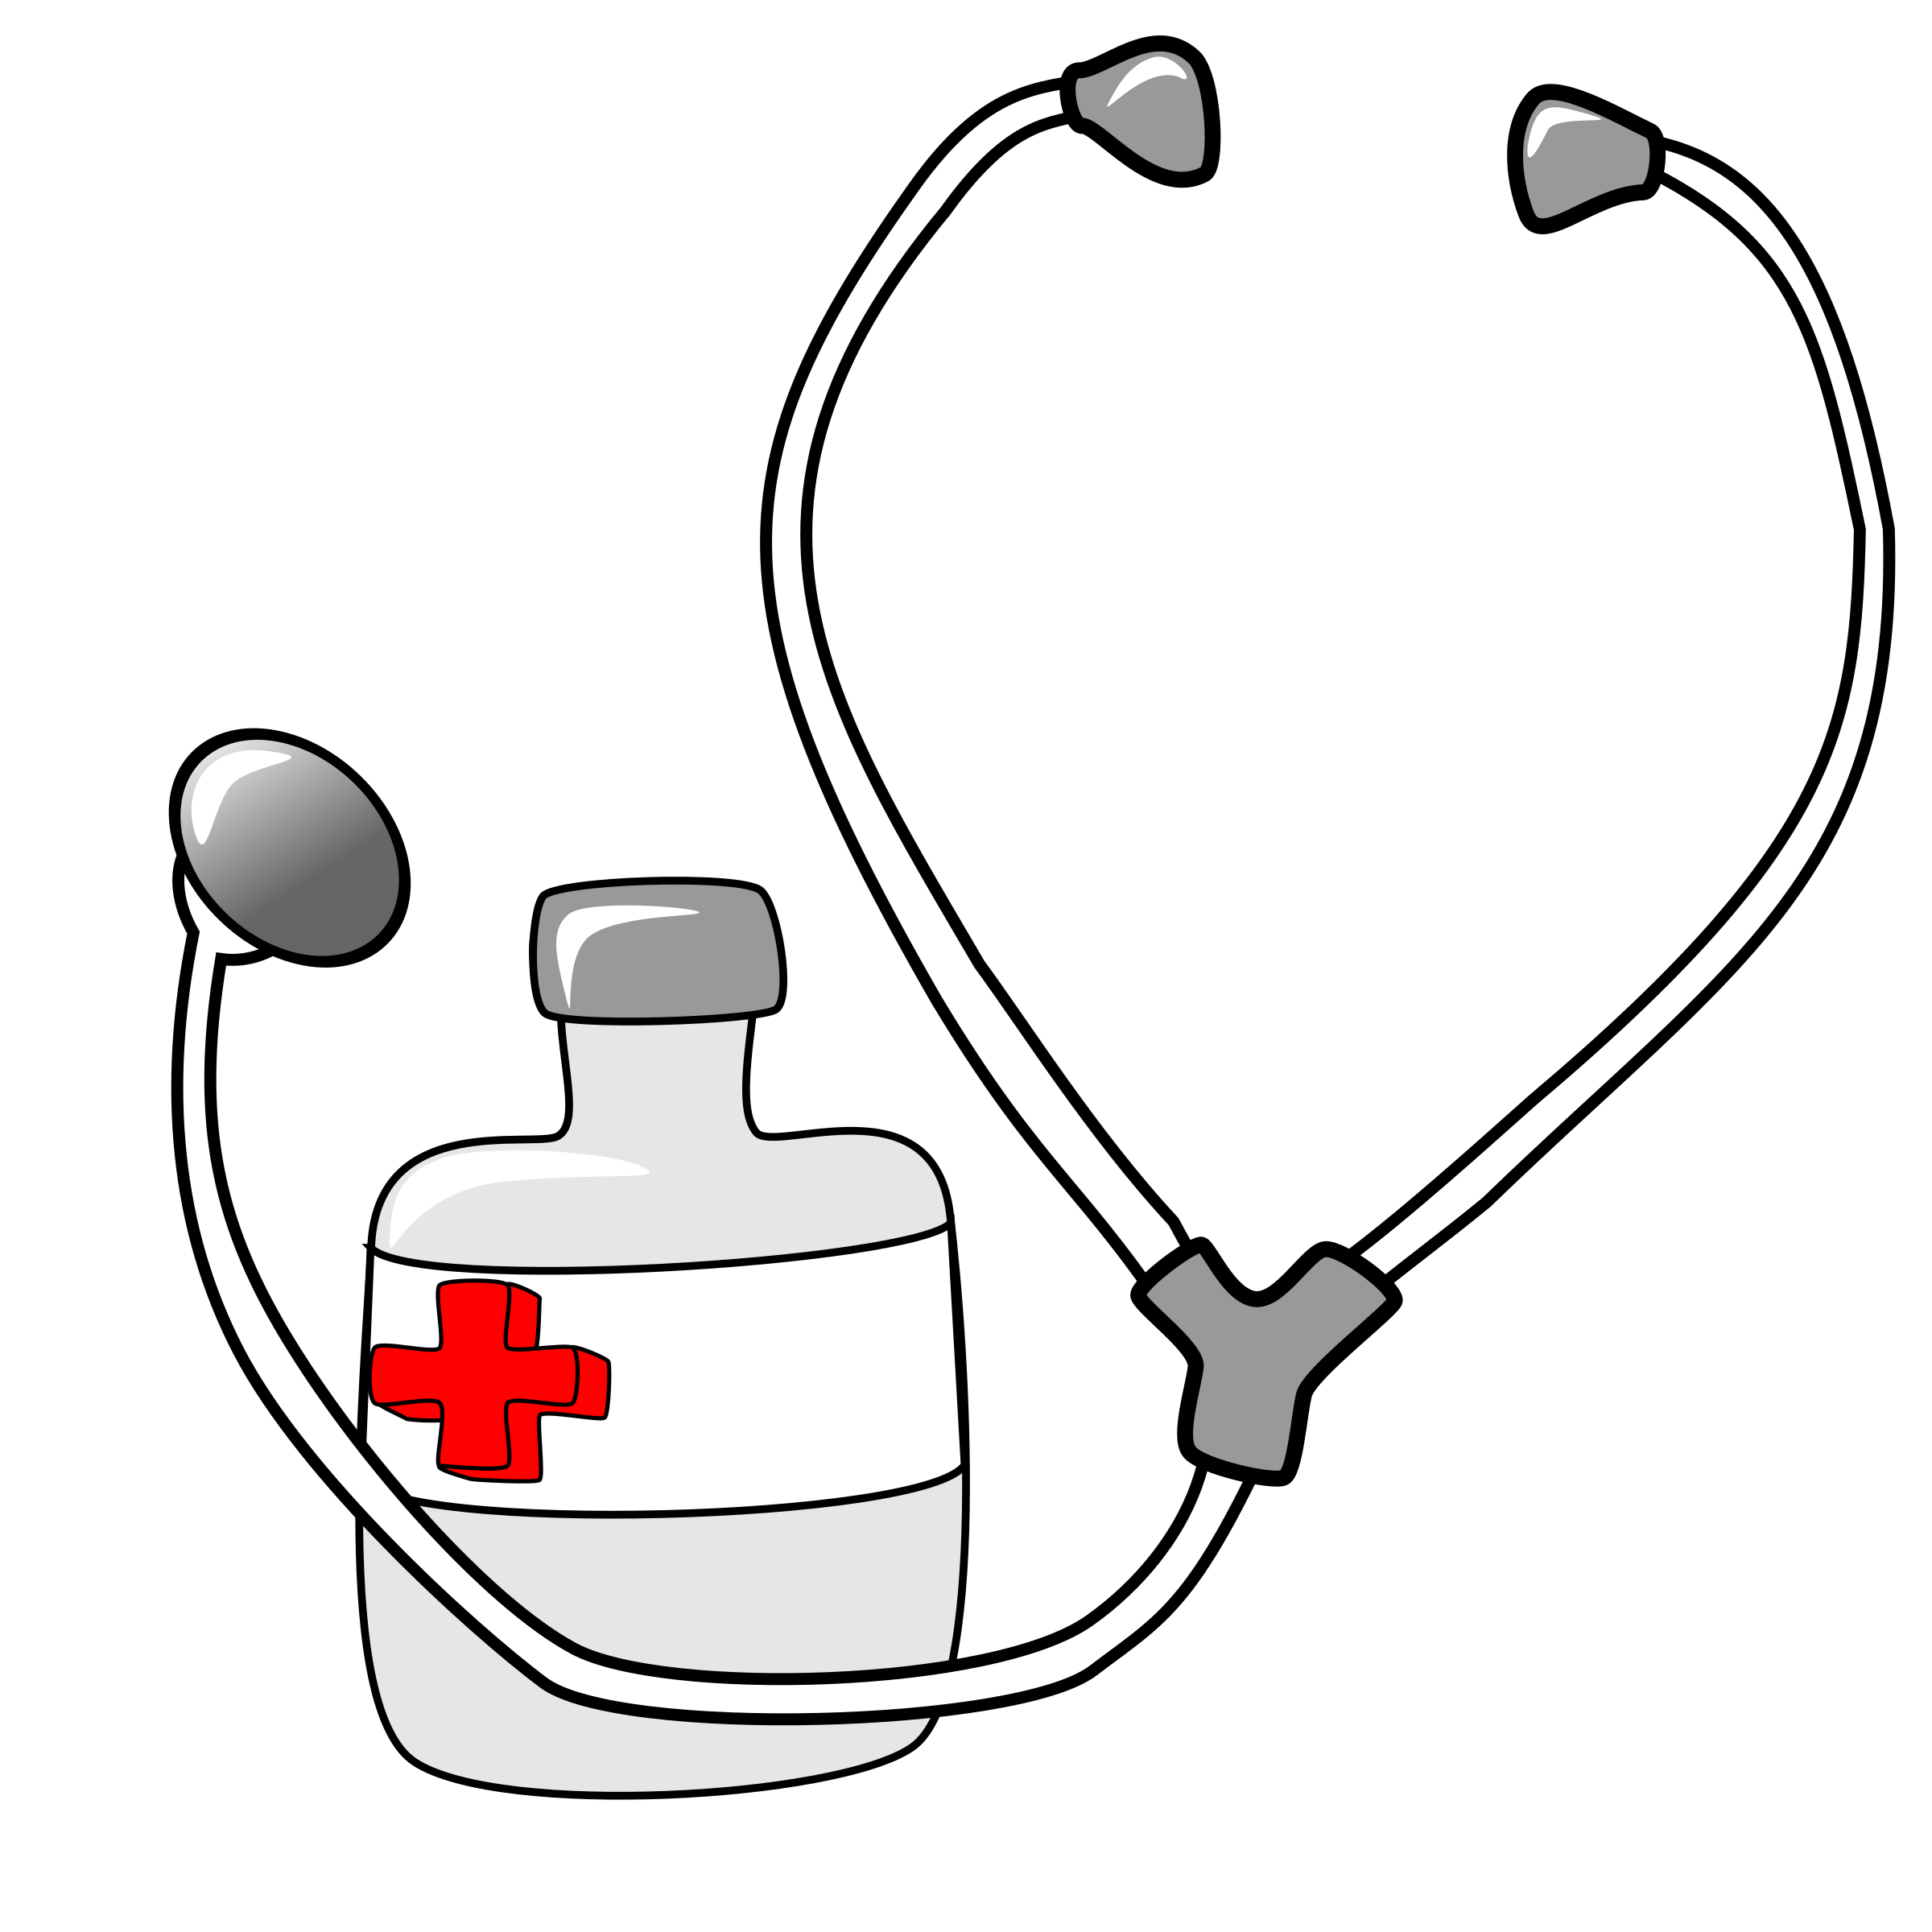 Pediatrician clipart doctor thing. Medicine and a stethoscope